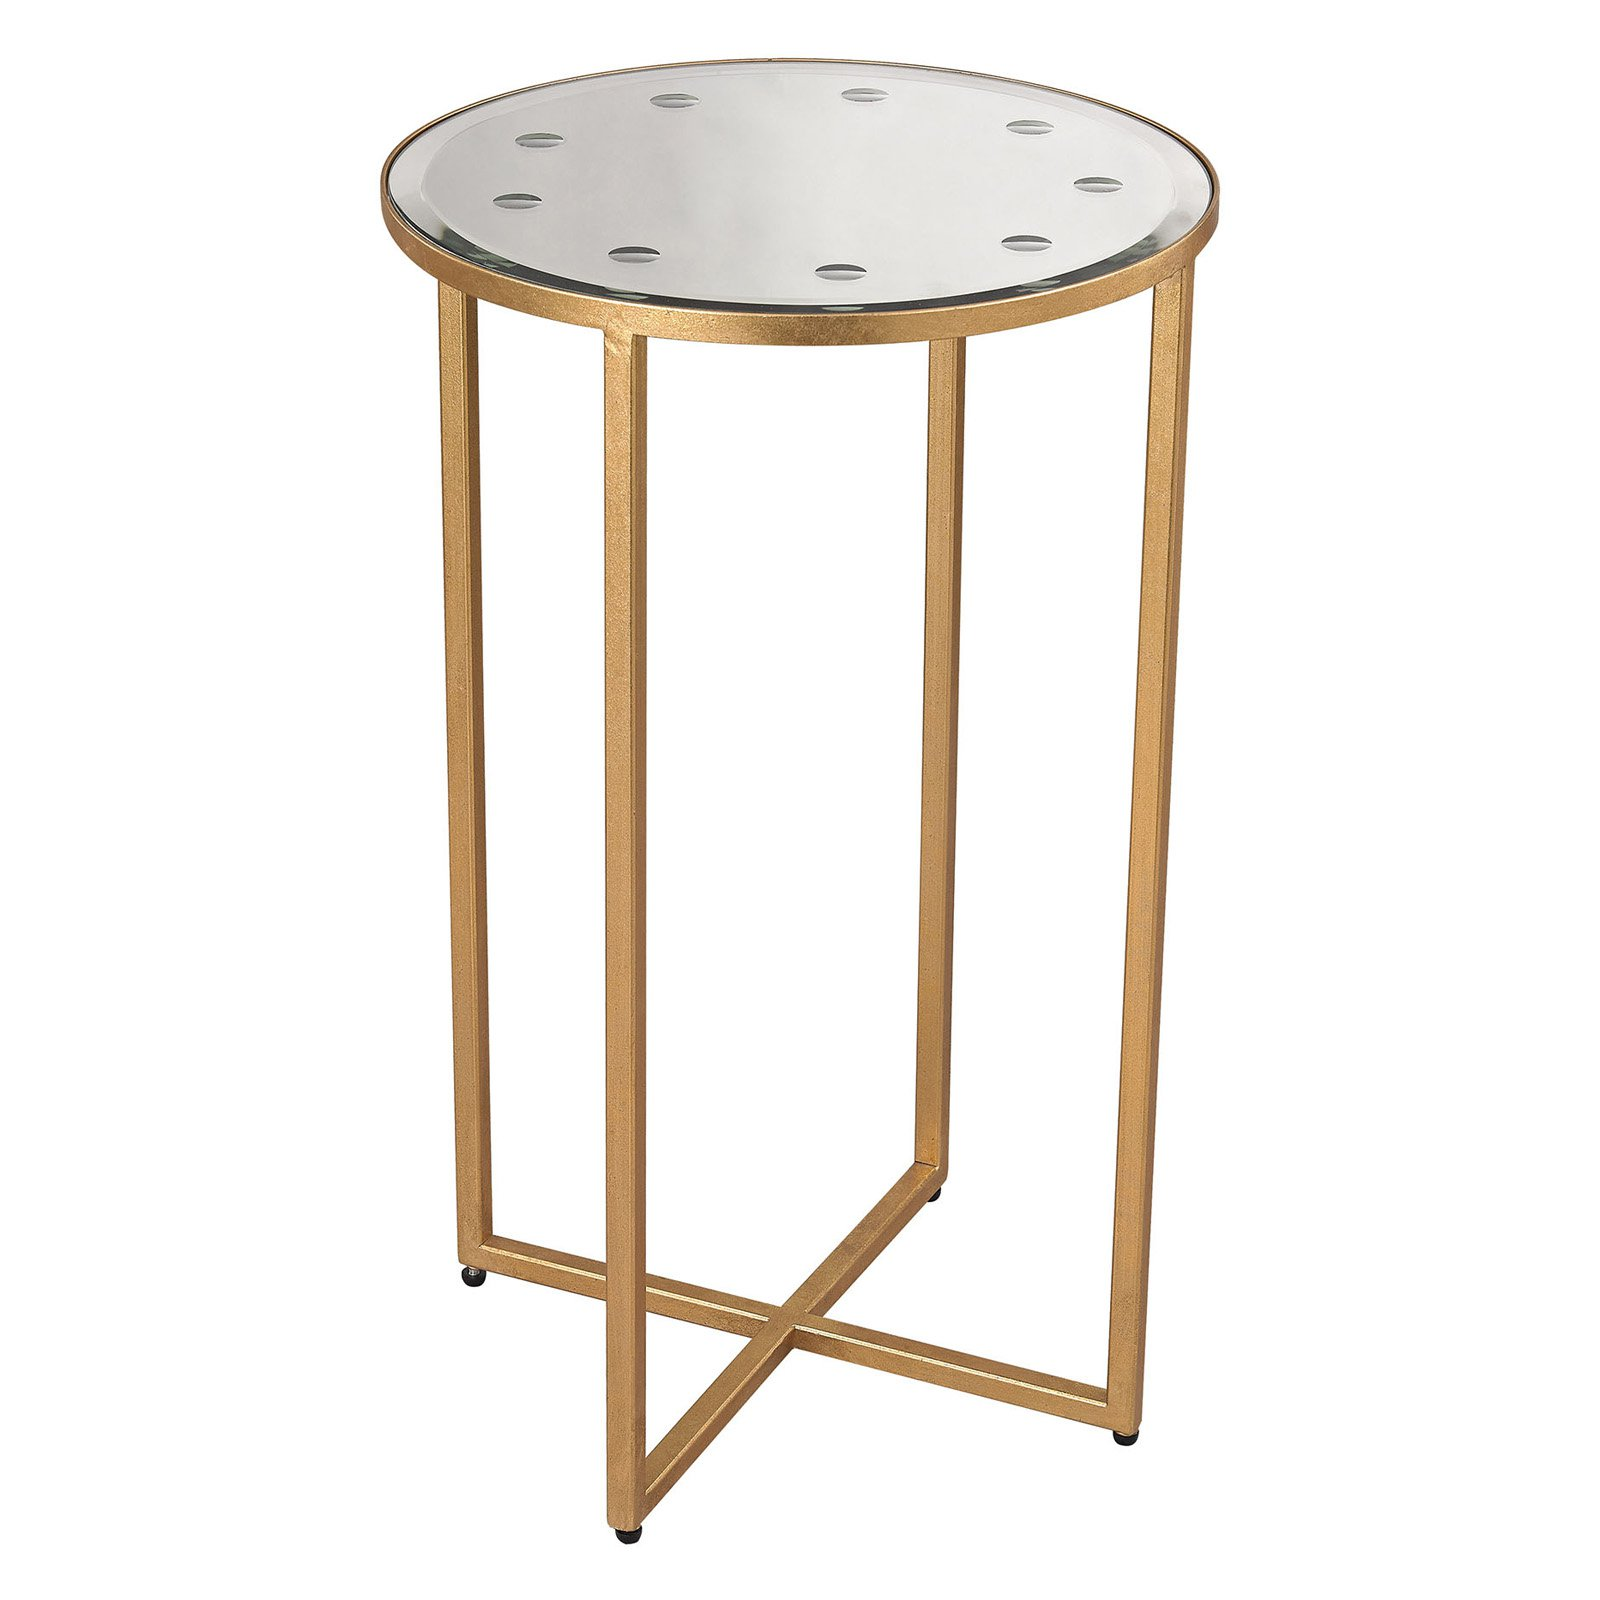 Dimond Home Cross Base Side Table by Dimond Home